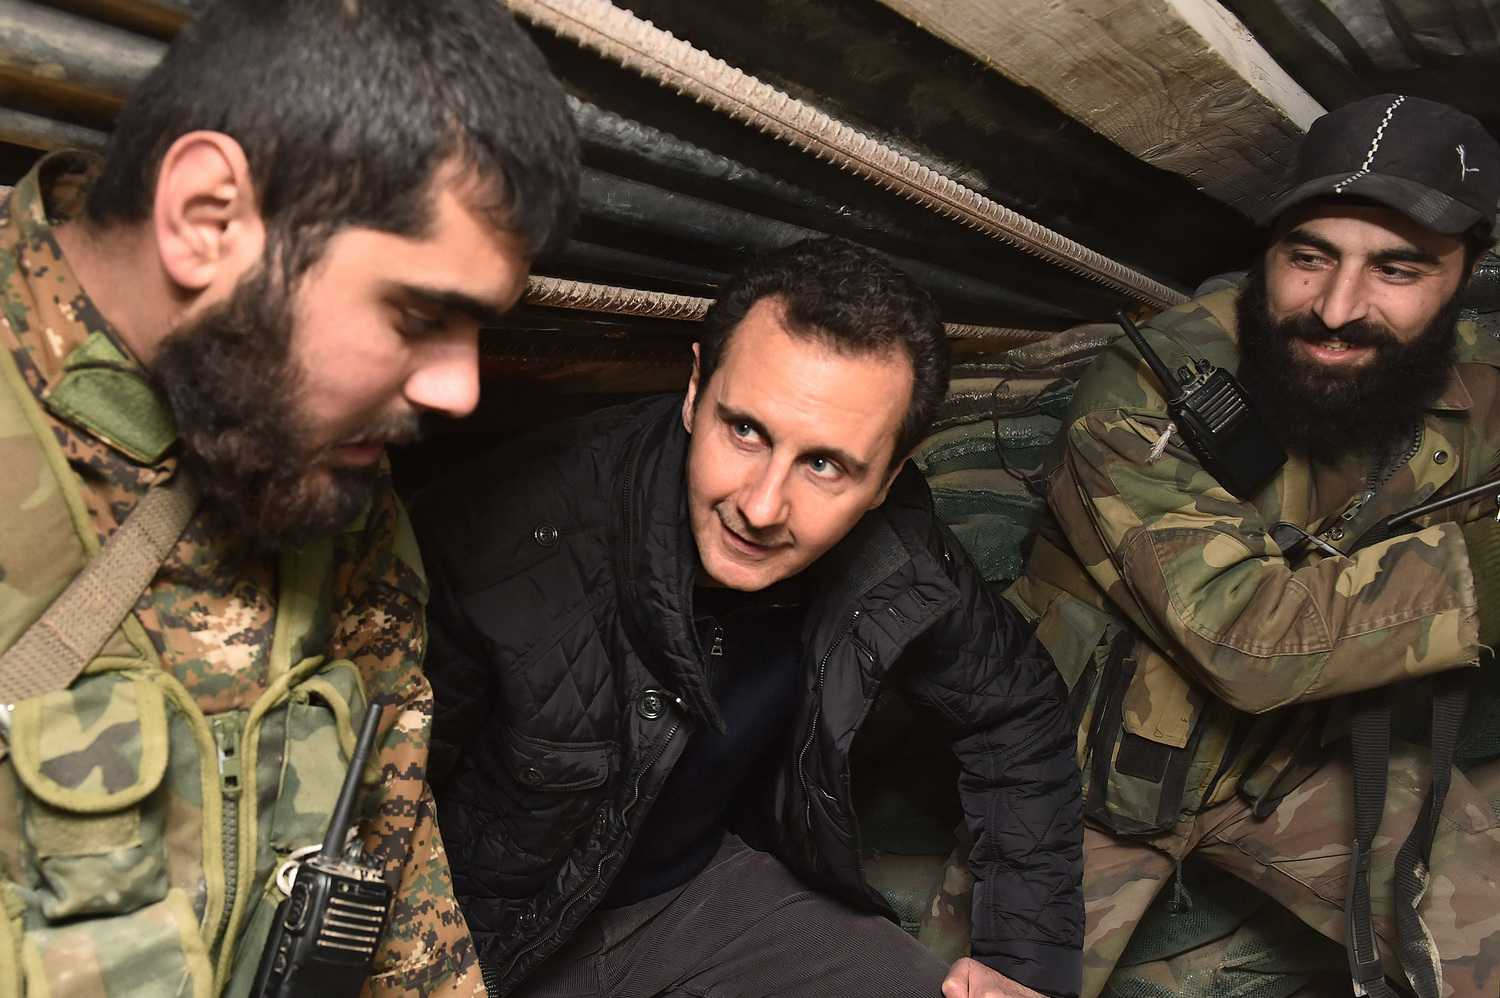 Syrian president Bashar Al Assad visits soldiers and officers at a military checkpoint near the area of Jobar, outskirts of Damascus, Syria, on December 31st, 2014. Assad has outlasted the Obama administration's 2011 prediction that his days are numbered. (Abaca Press/TNS)